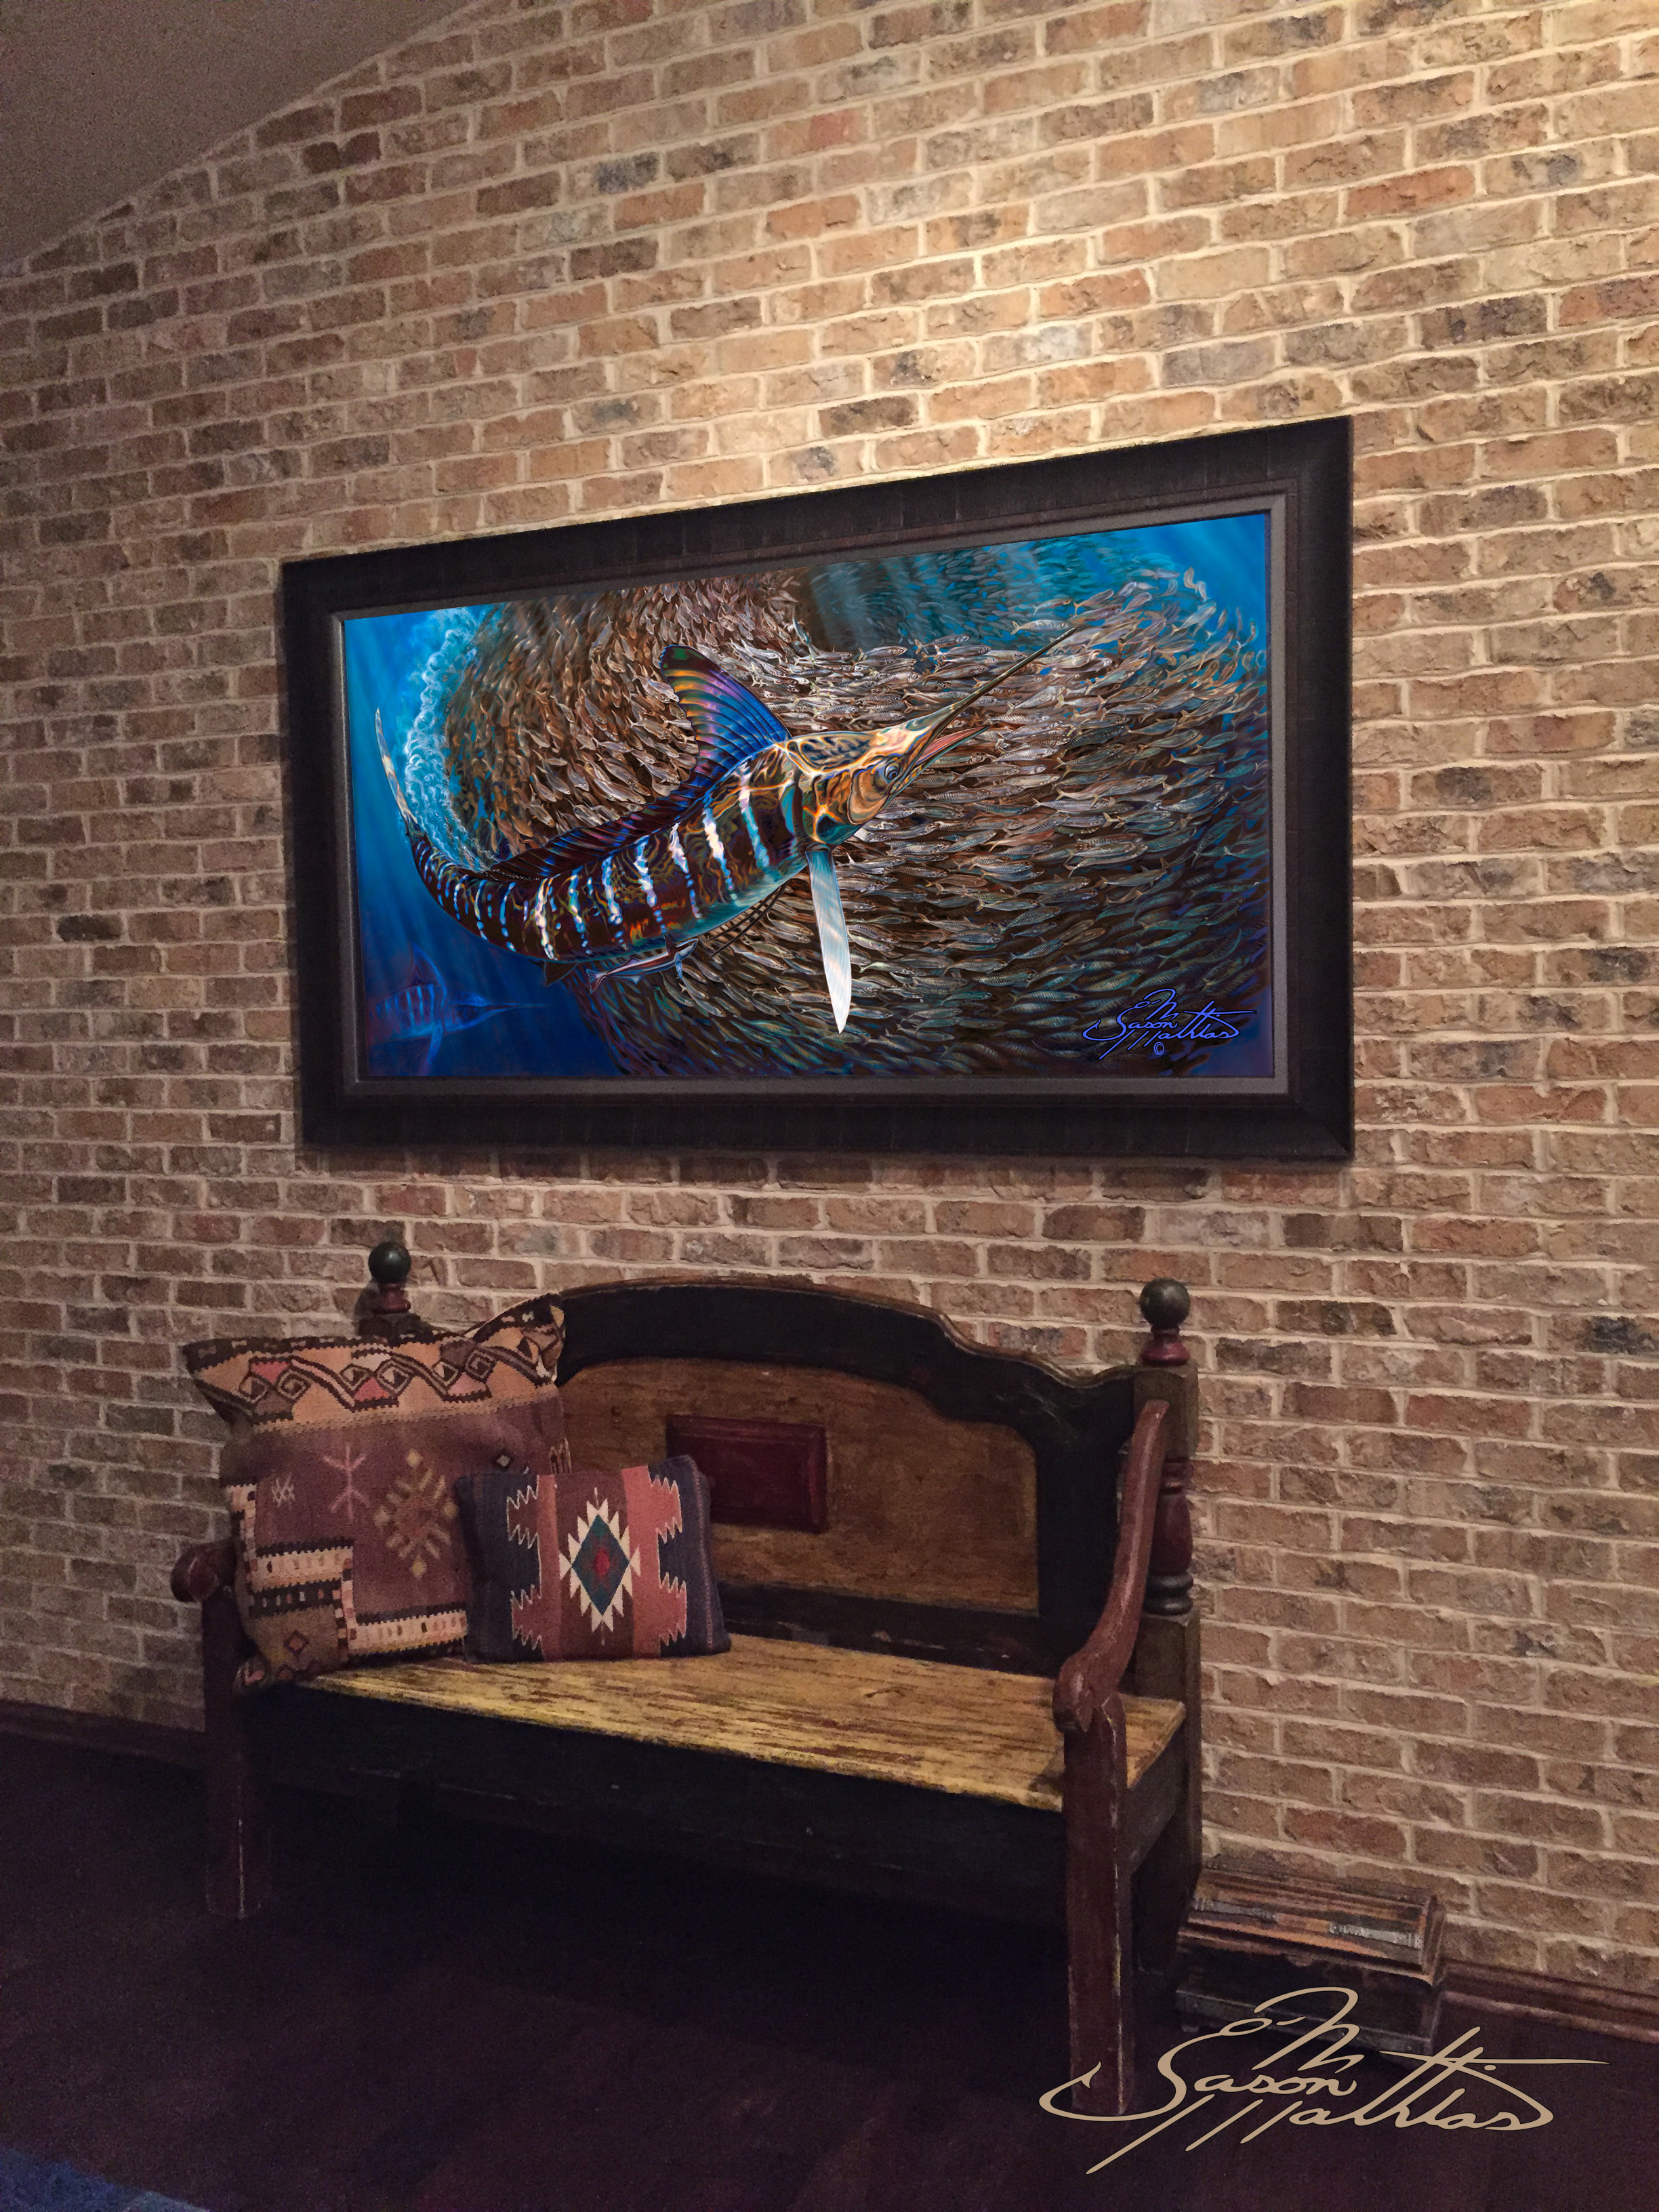 striped-marlin-painting-art-jason-mathias.jpg